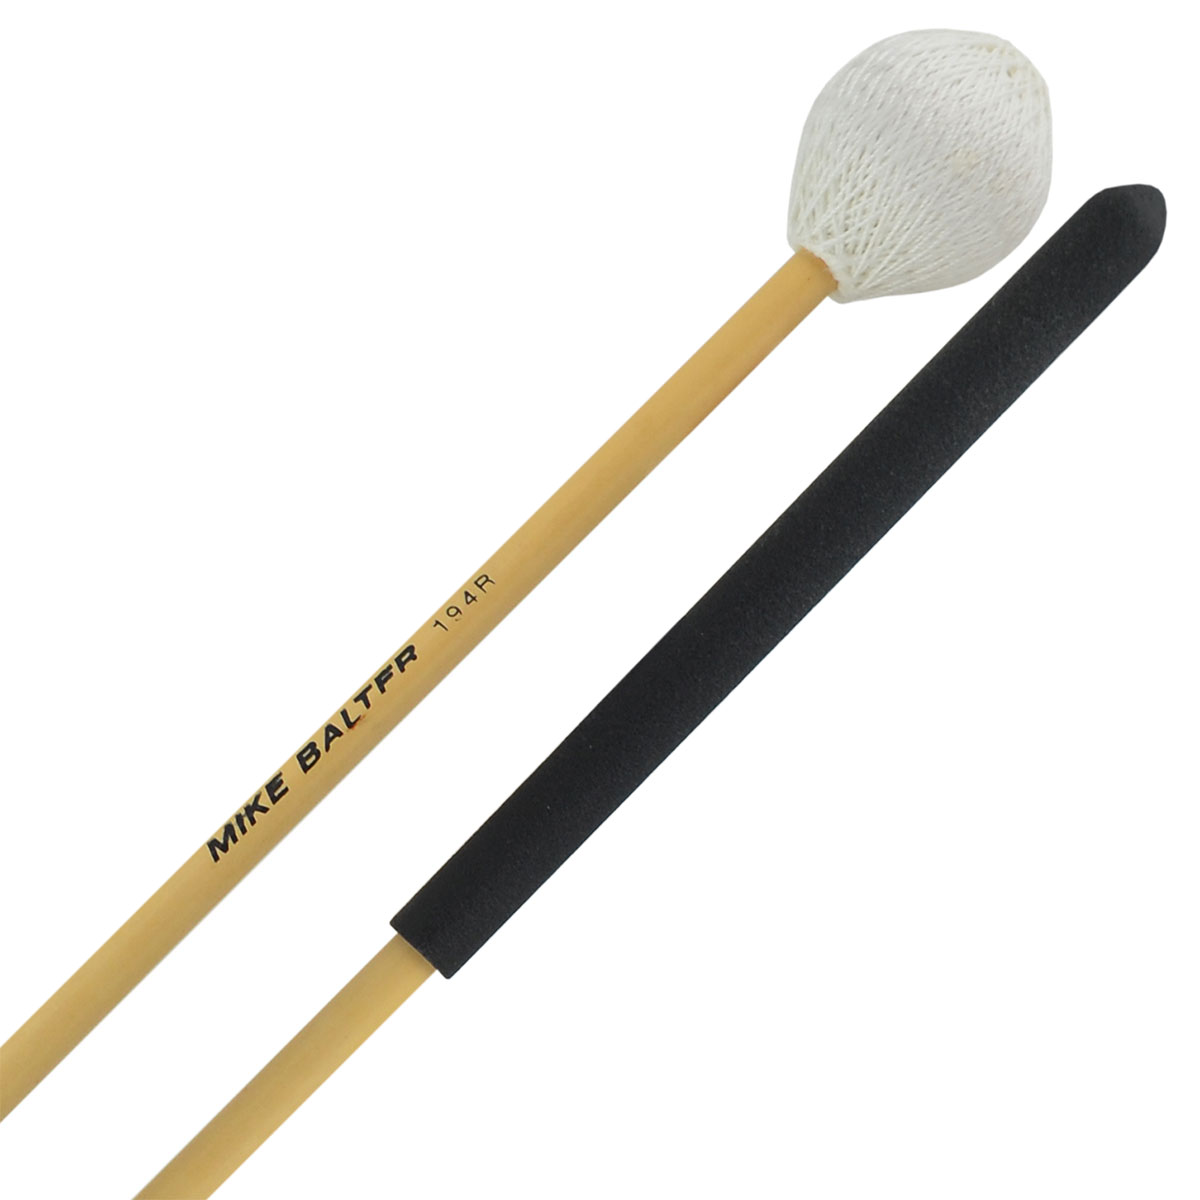 Mike Balter High Volume Medium Soft Vibraphone/Marimba Mallets with Rattan Handles